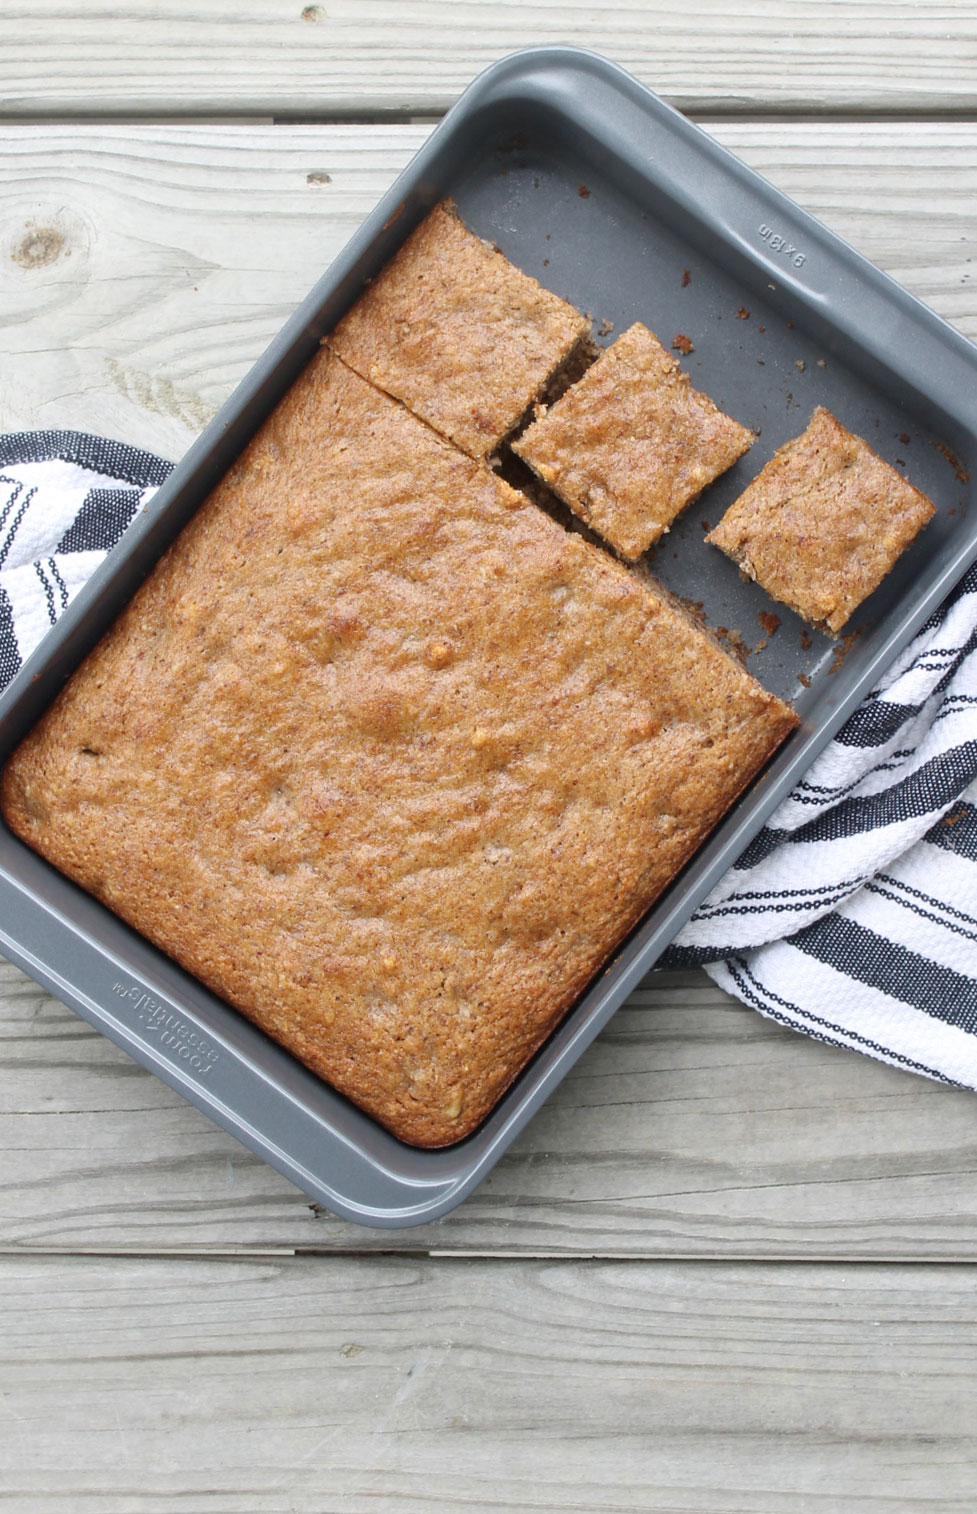 Healthier Vegan Banana Cake With Almond Flour (You'll never be able to tell this moist, fluffy cake doesn't have any dairy or eggs!) Click through for the recipe. #bananabread #bananacake #veganbananabread #vegan #almondflour #healthydessert #healthysnack #healthybananabread | glitterinc.com | @glitterinc